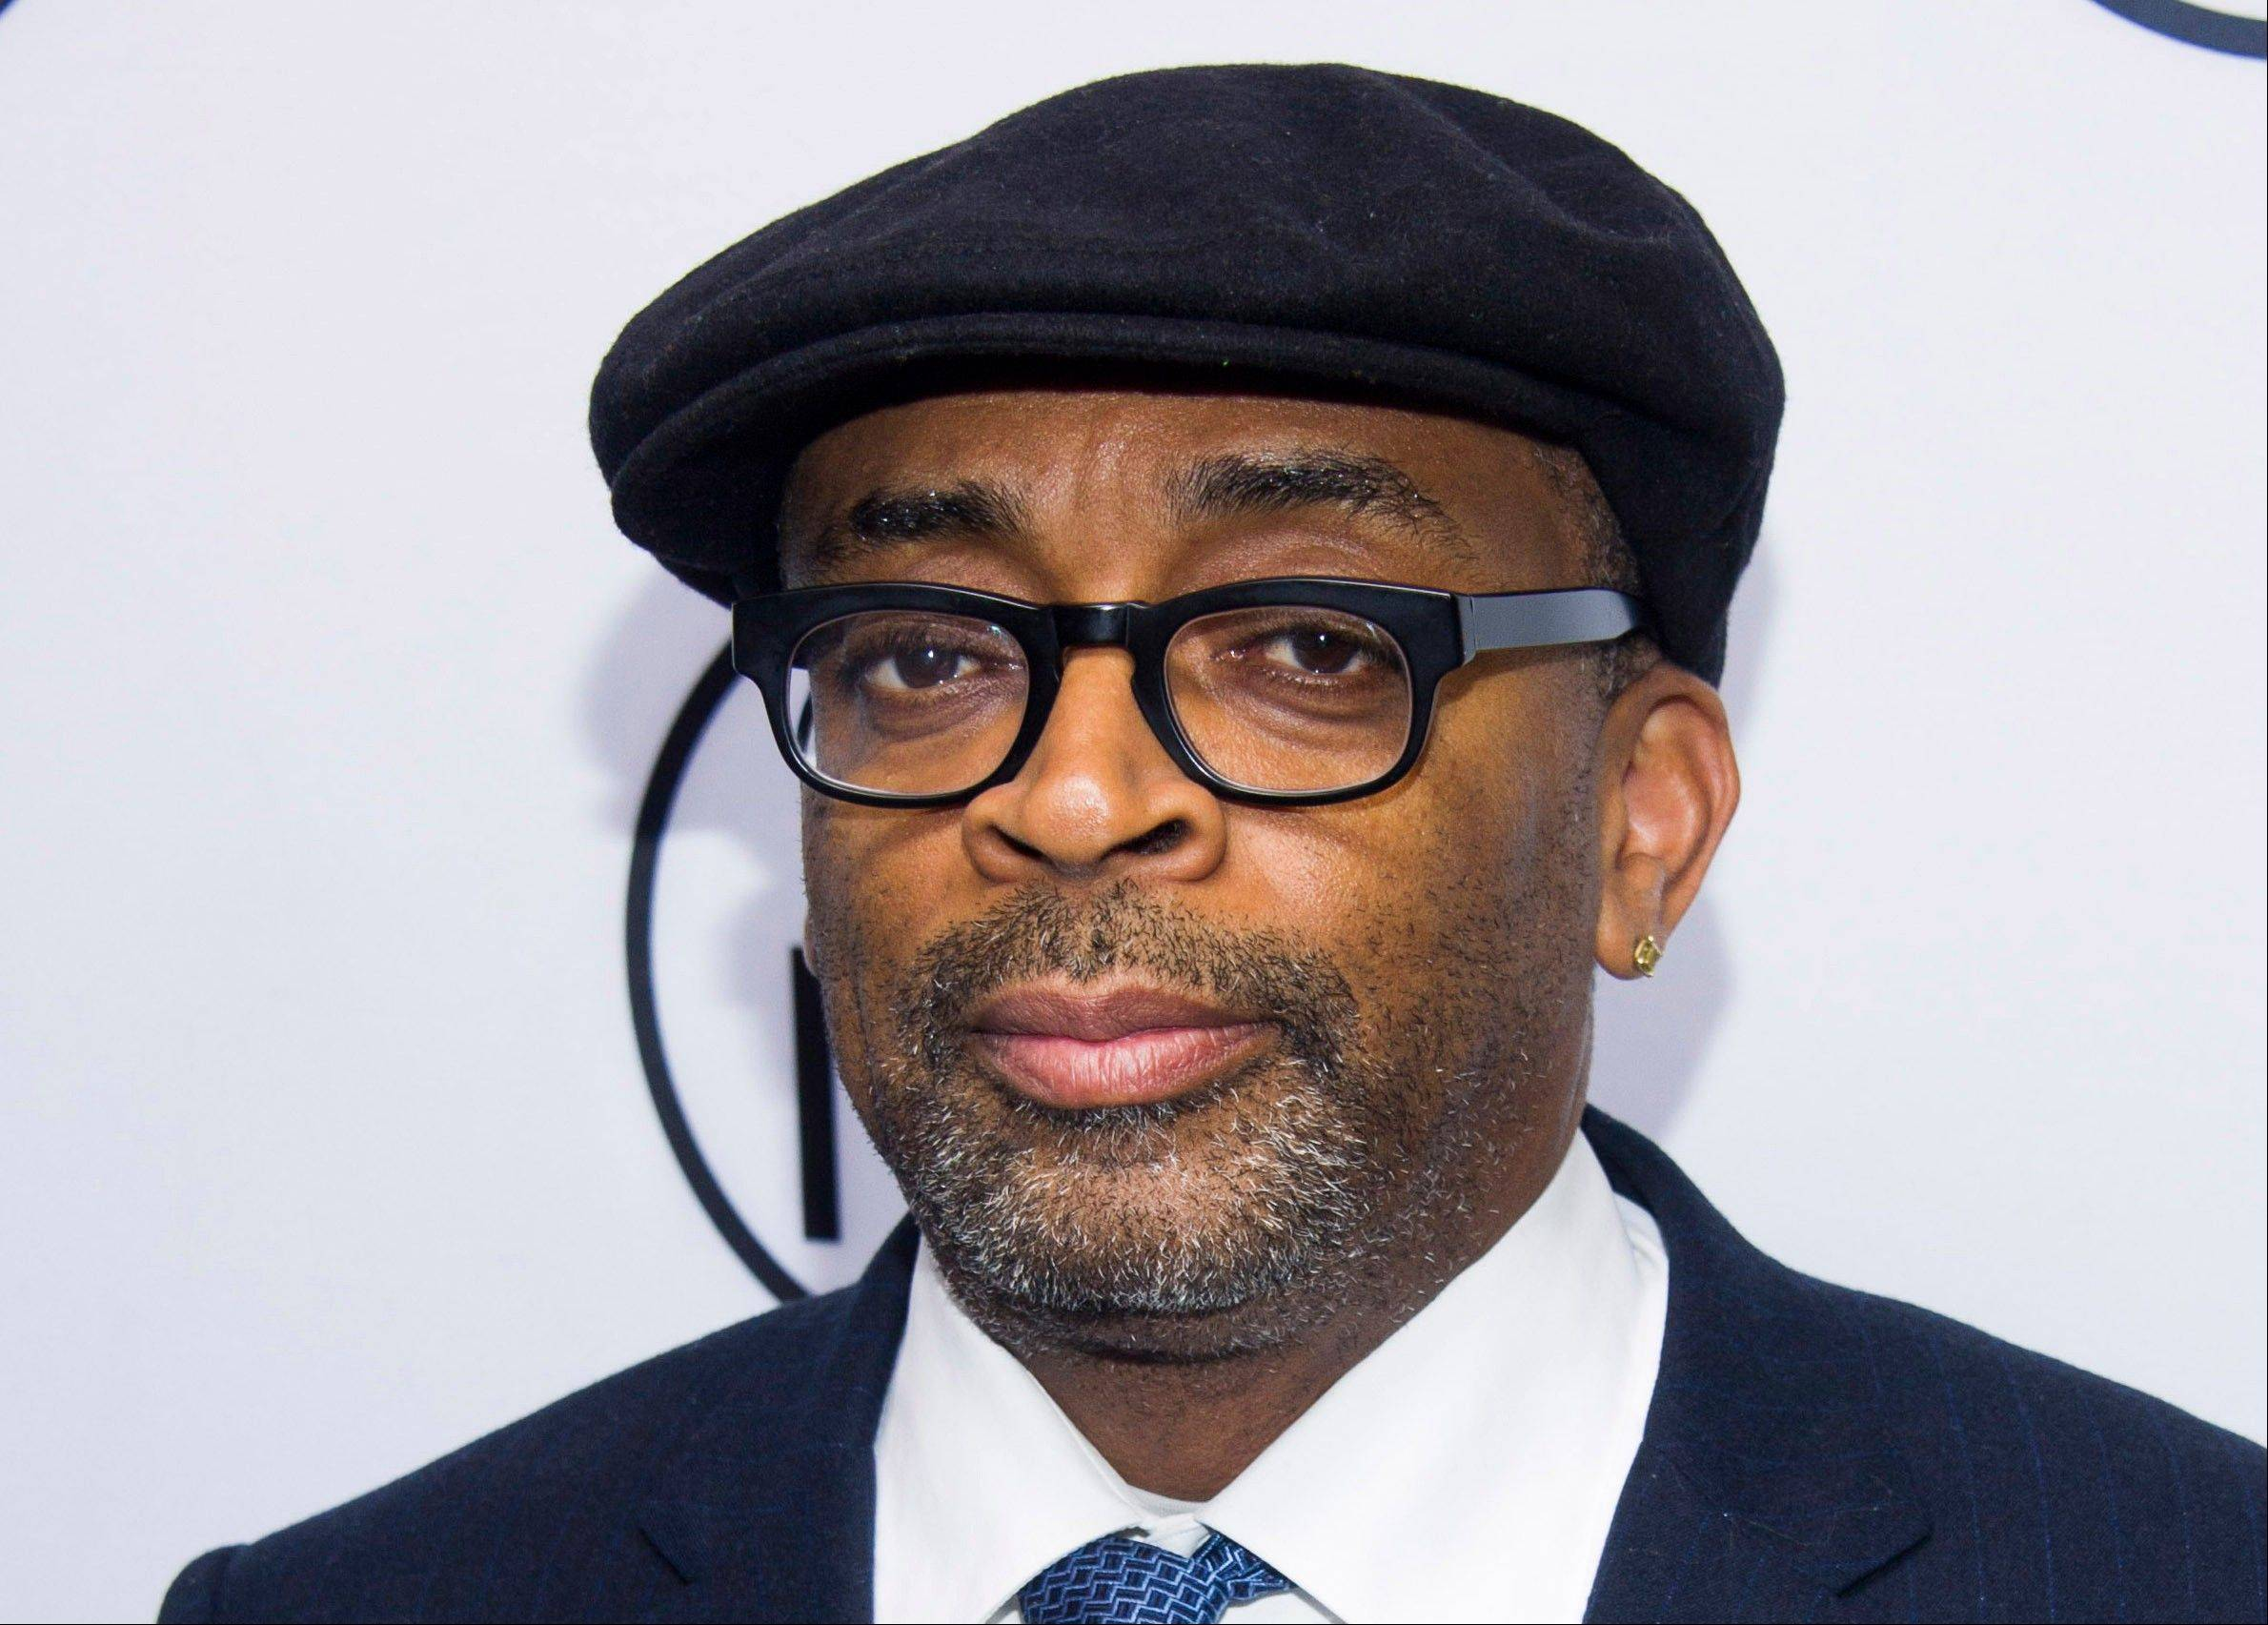 Spike Lee has launched a Kickstarter campaign to help fund his next feature film. The Brooklyn director on Monday unveiled his bid to raise $1.25 million over the next month. Lee offered few details on the film, but said it would be about �the addiction of blood.�